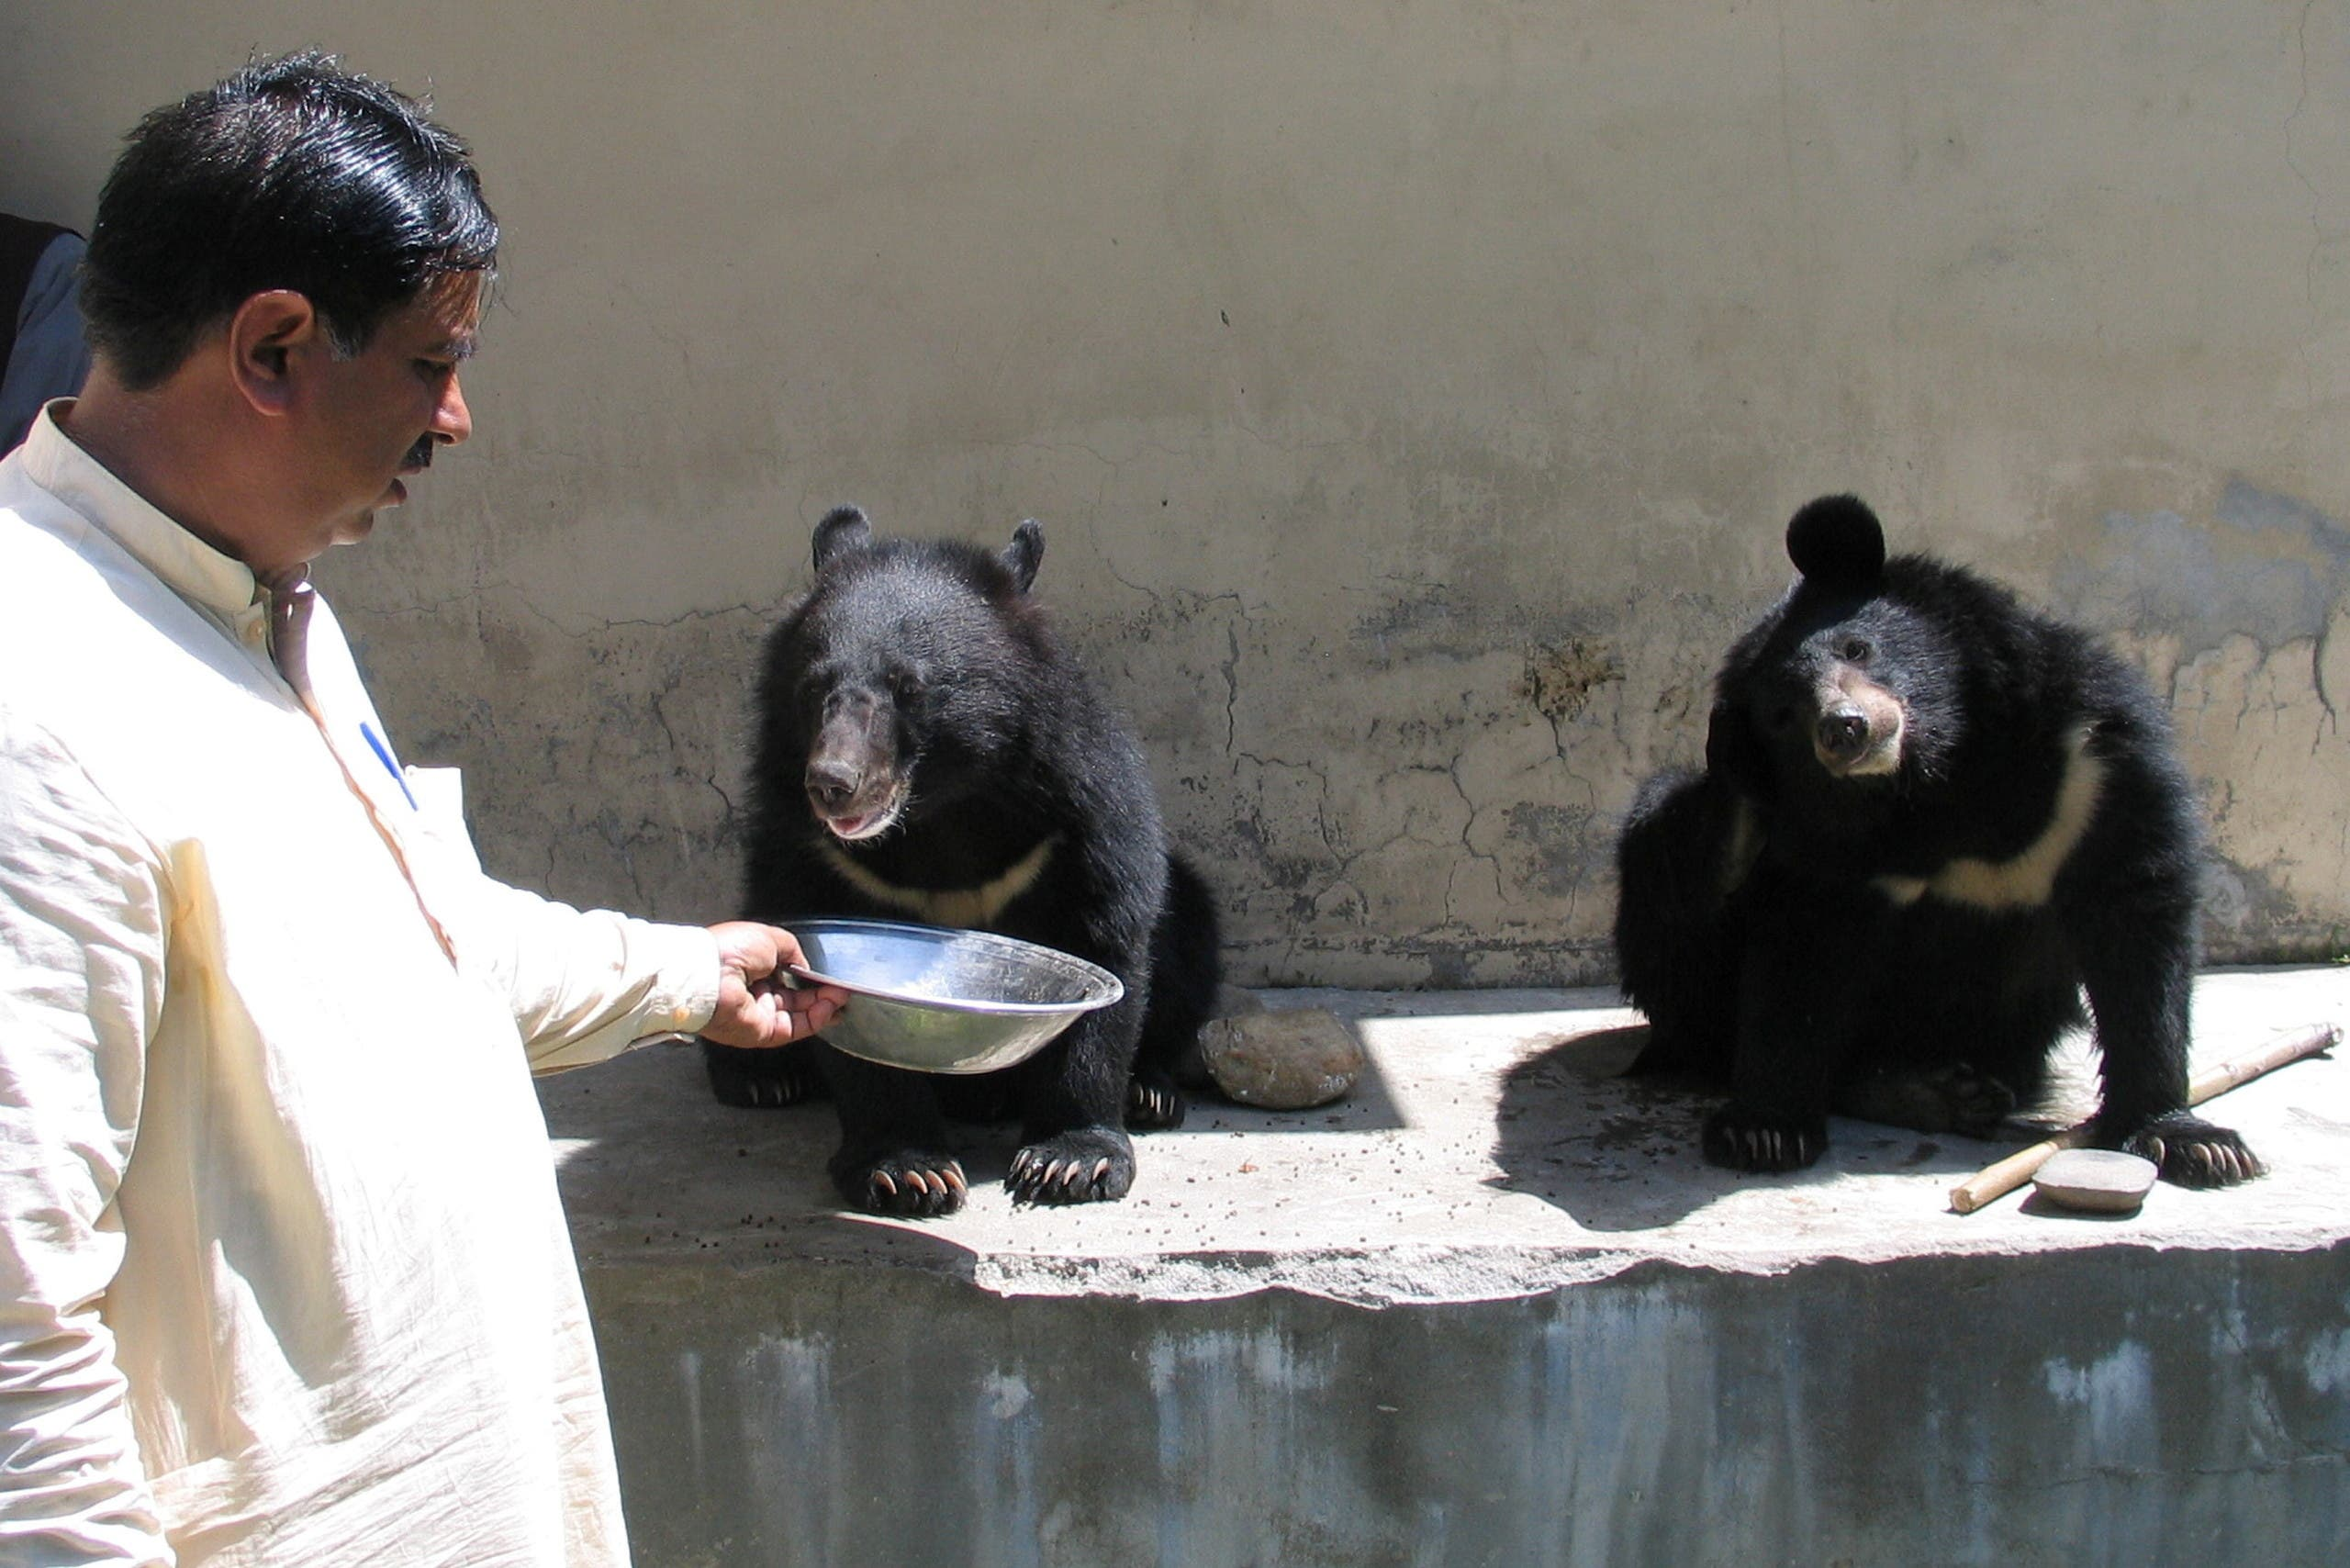 Mohammad Ashraf, assistant game warden, feeds a pair of Asian black bears, rescued a year ago near the Line of Control (LoC), at the Wildlife and Fisheries department in a Dawarian village in Neelum Valley, Pakistan-administrated Kashmir, June 12, 2021. Picture taken June 12, 2021. (Reuters)